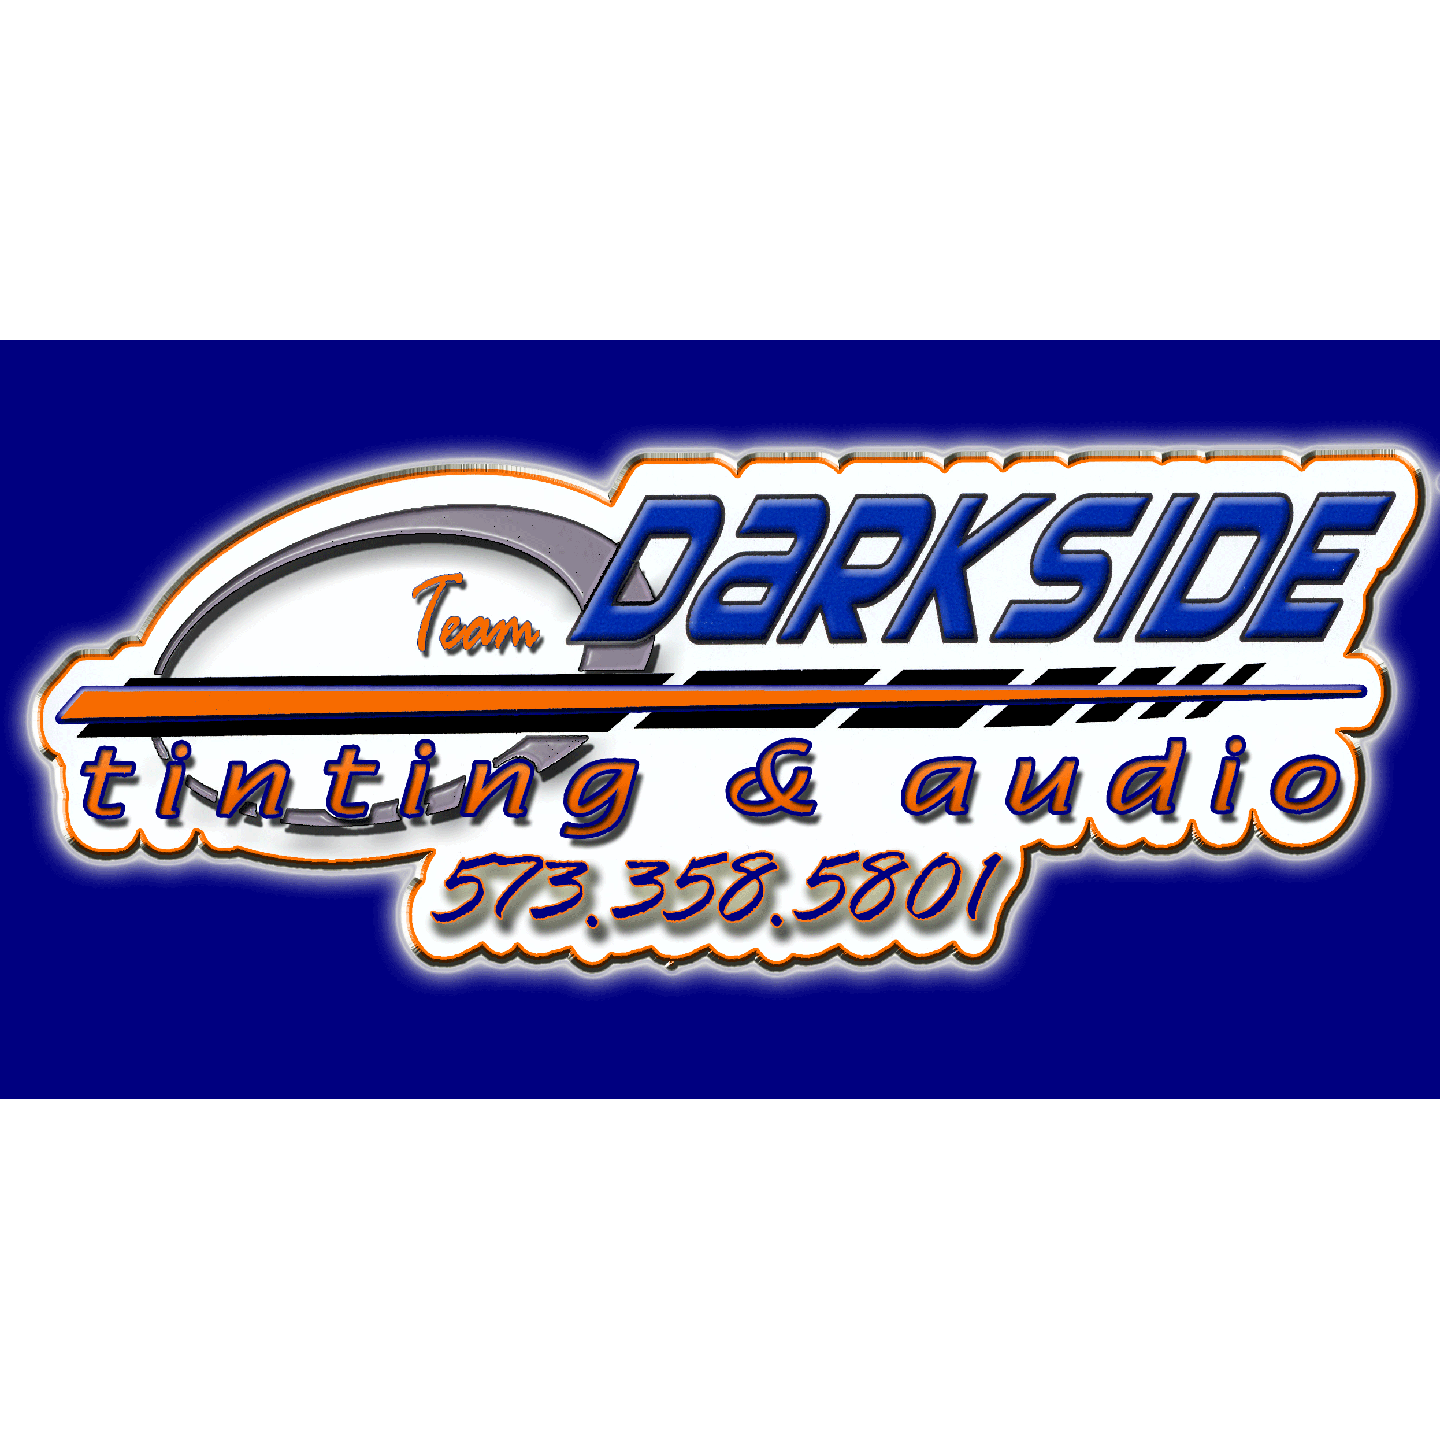 Darkside Window Tinting Inc.